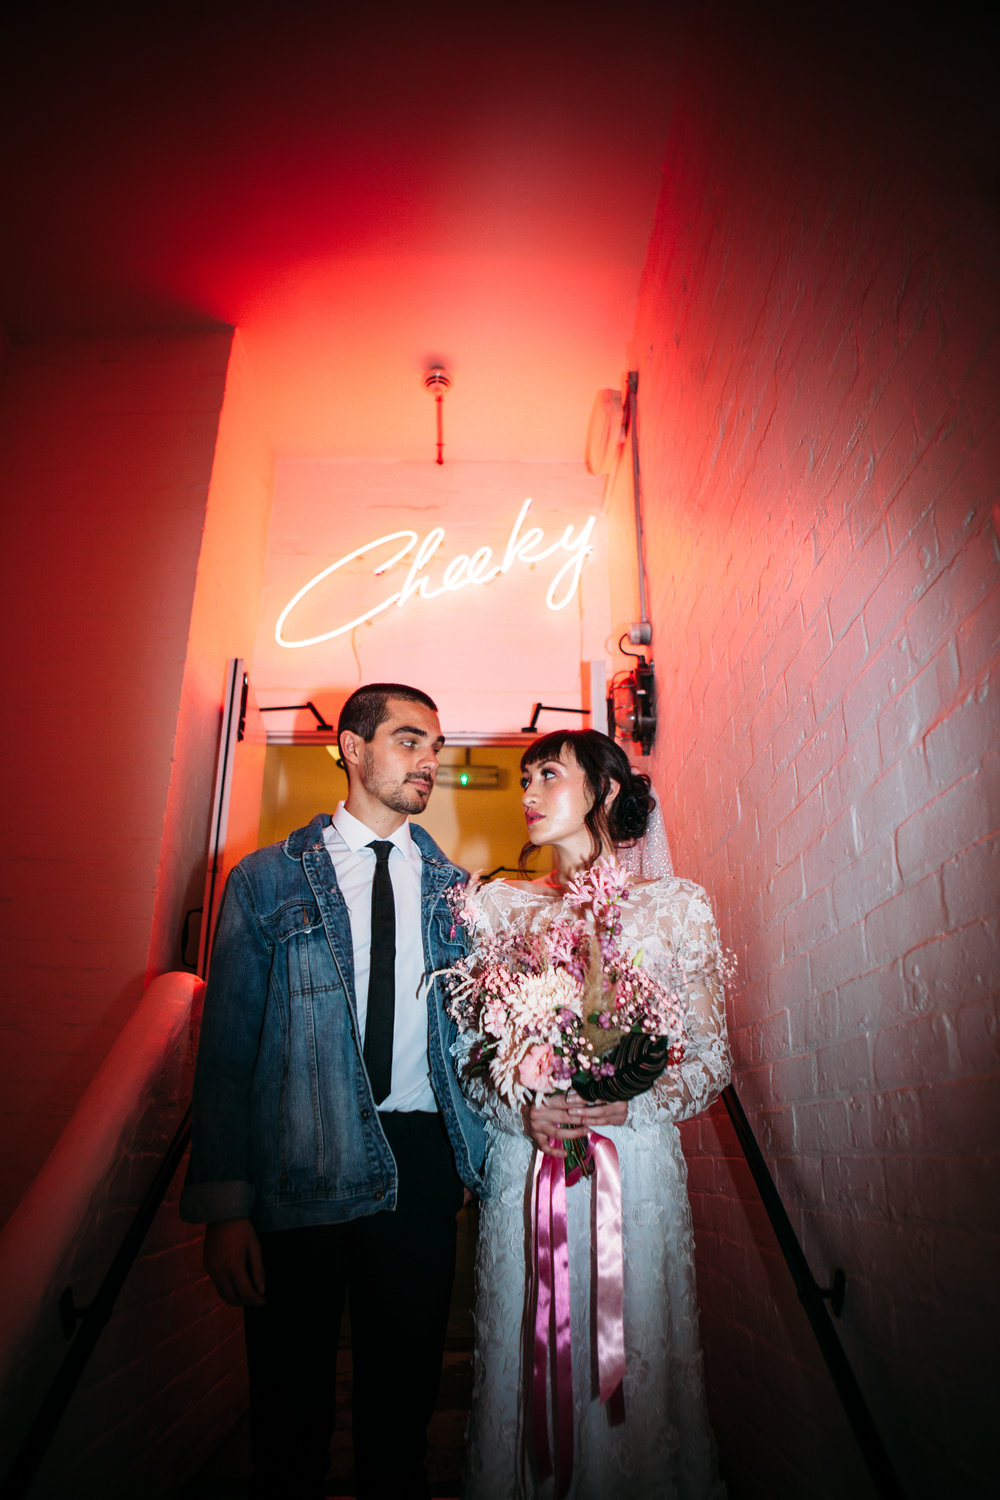 Grit and Glam Pink Shoreditch Elopement 00034.jpg